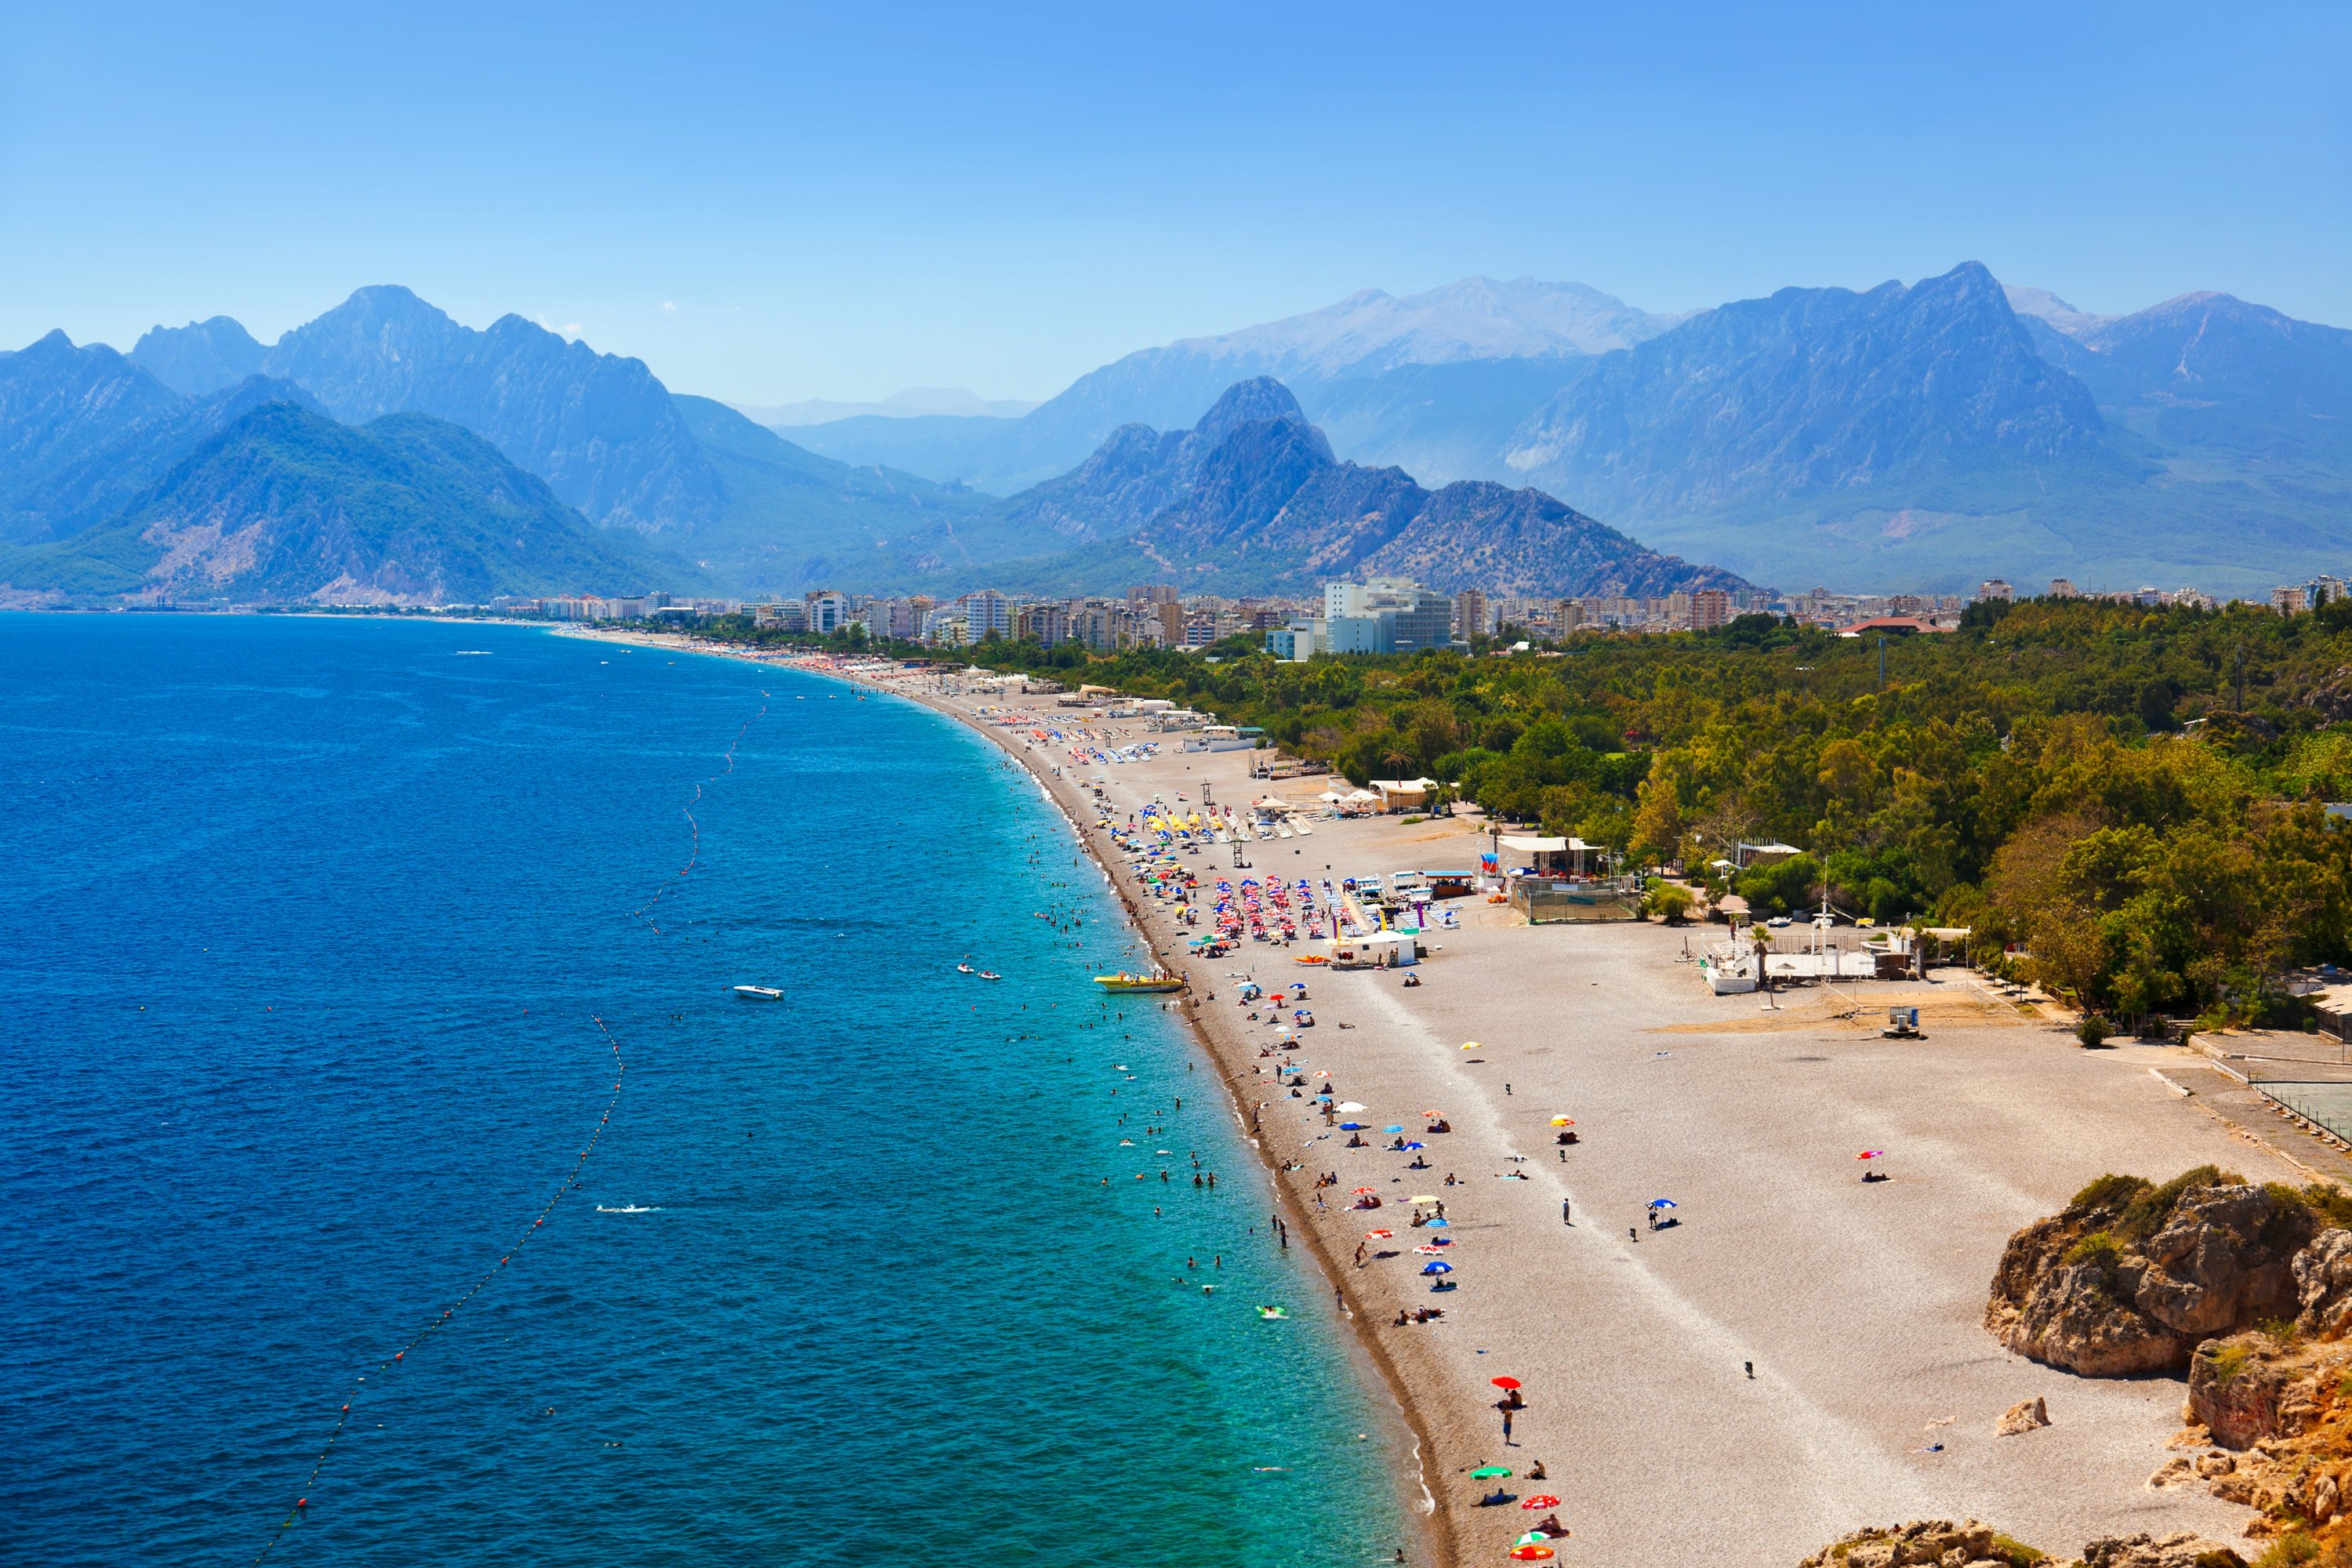 Turkey's tourism capital Antalya is famous for its beautiful beaches. (Shutterstock Photo)